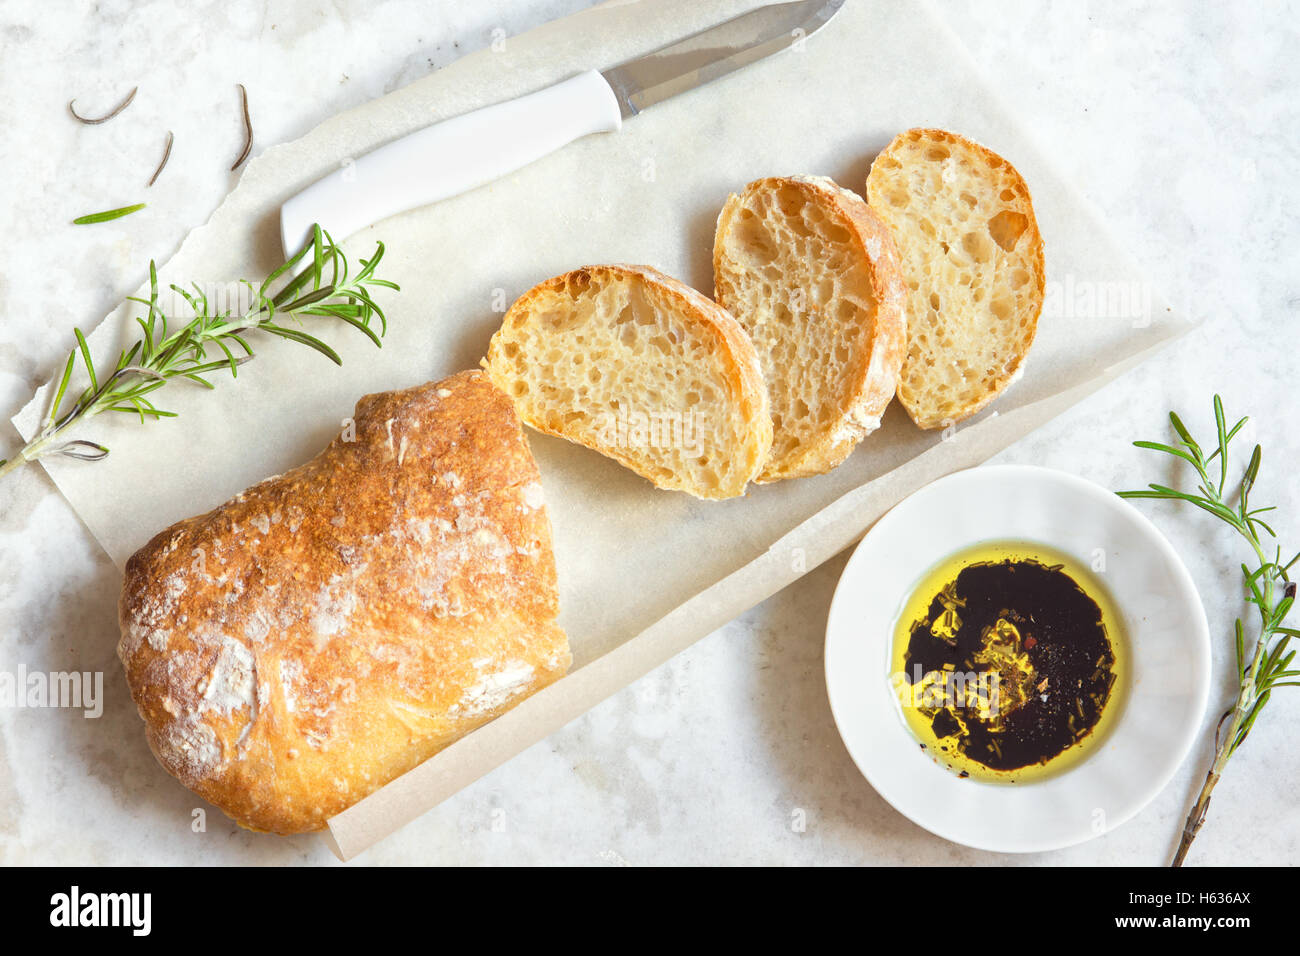 Italian bread Ciabatta with olive oil and rosemary on white marble background - fresh homemade bread bakery - Stock Image